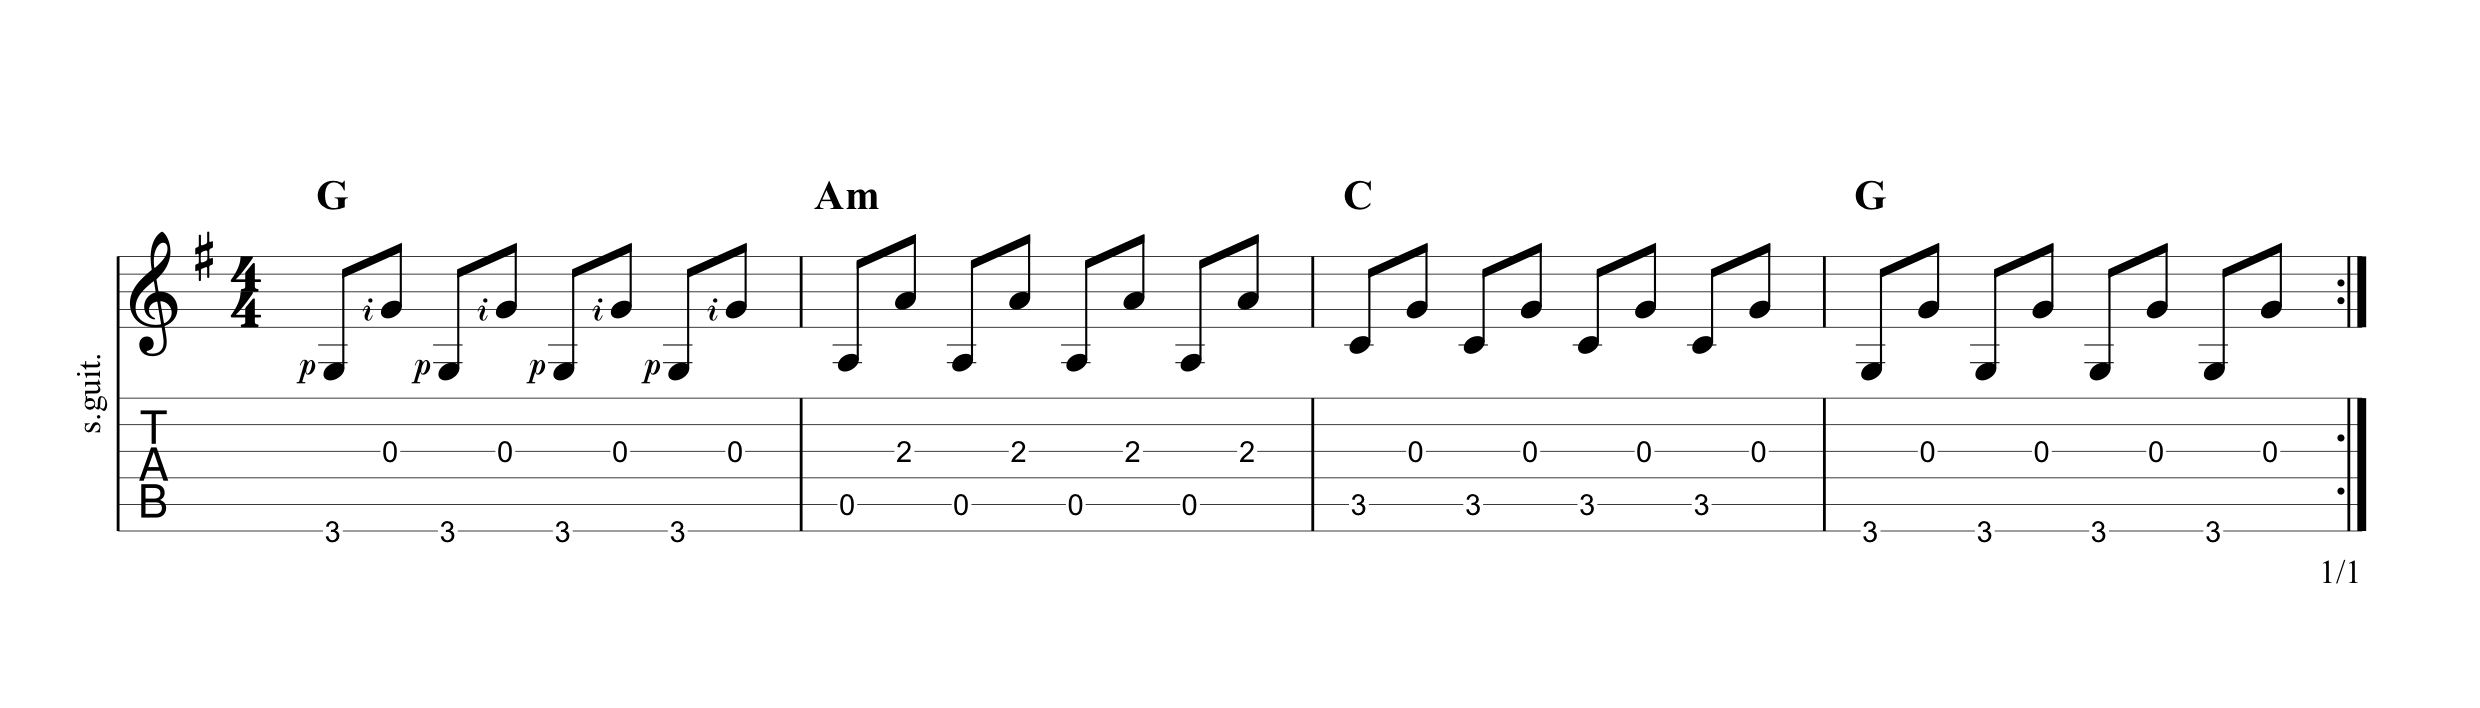 Fingerpicking Pattern 2